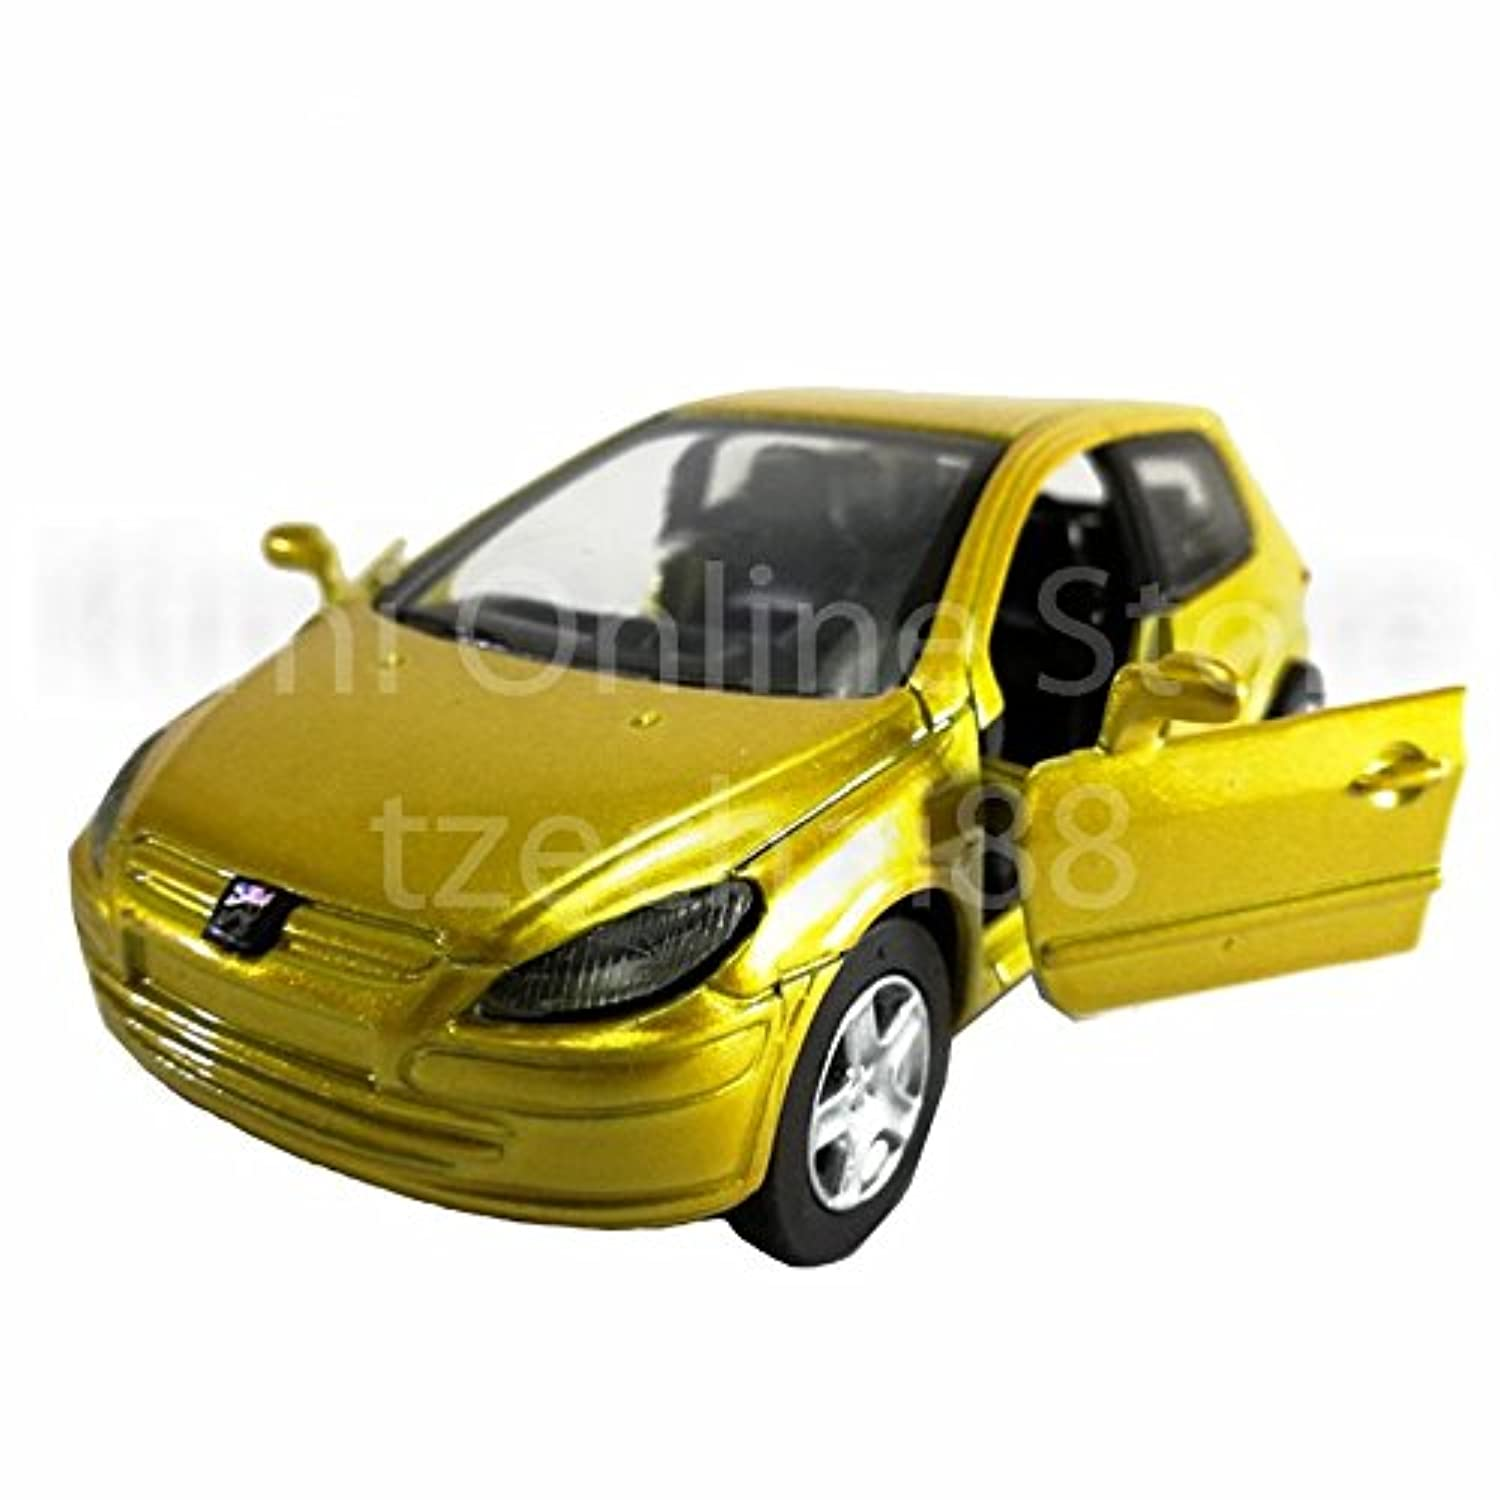 Newray Die-cast Peugeot 307 Car 1:32 Yellow Color Model Collection Gift New Toys